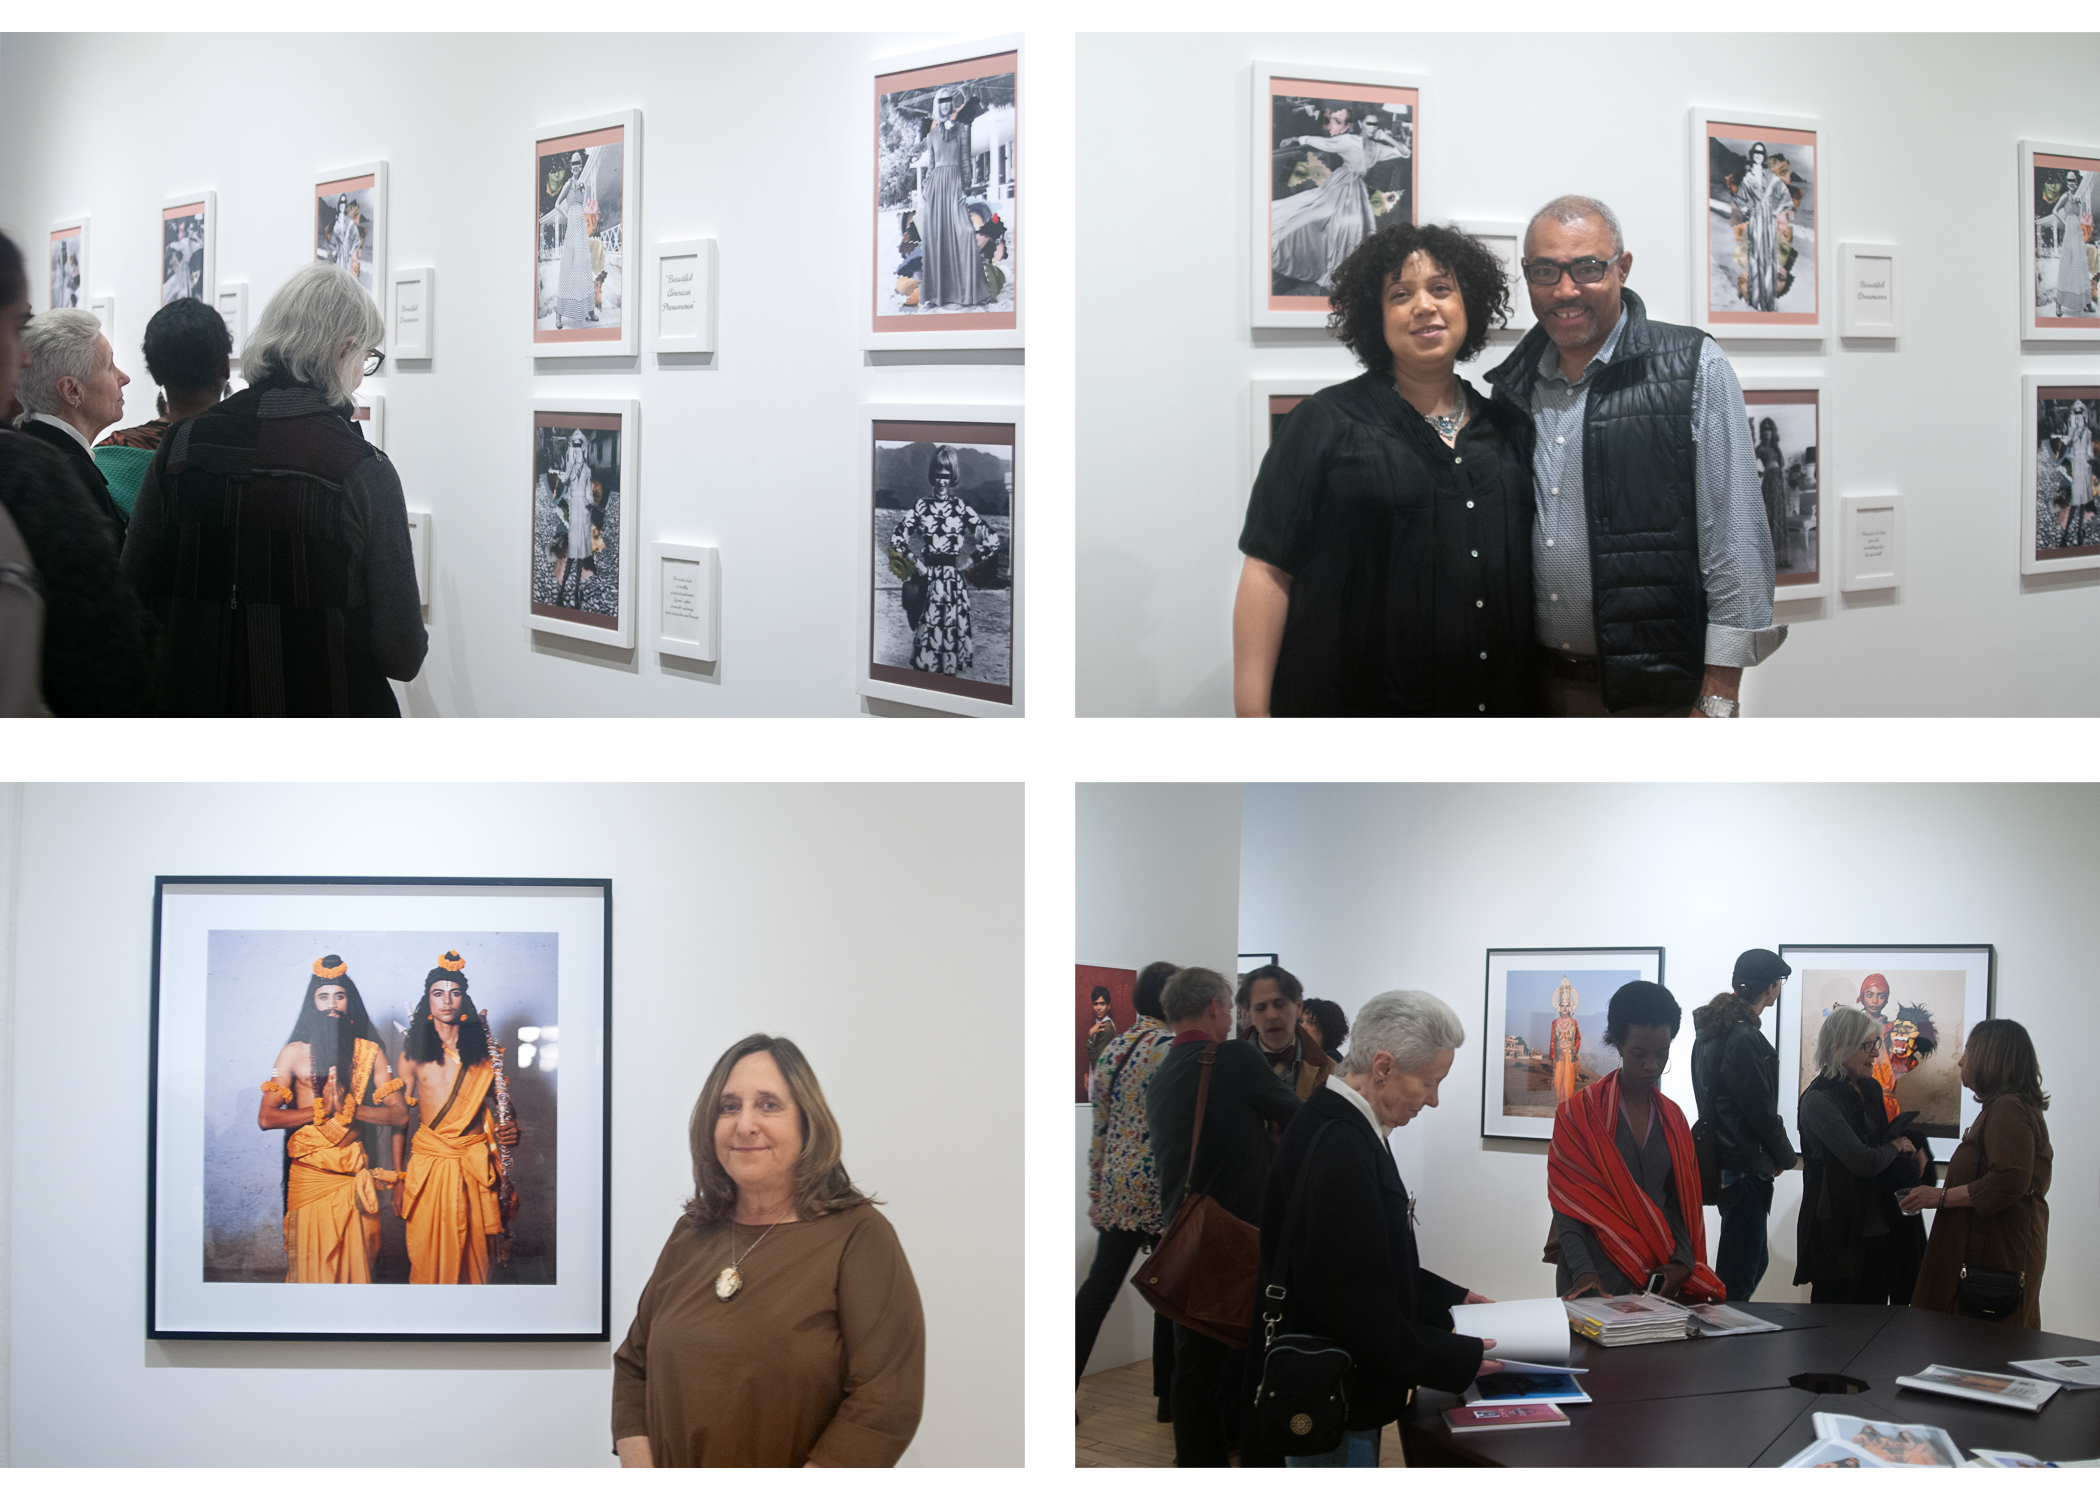 Image above: ©Sang Ha Park, Opening Night, Top right: Qiana Mestrich with her husband, Bottom left: Phyllis Galembo